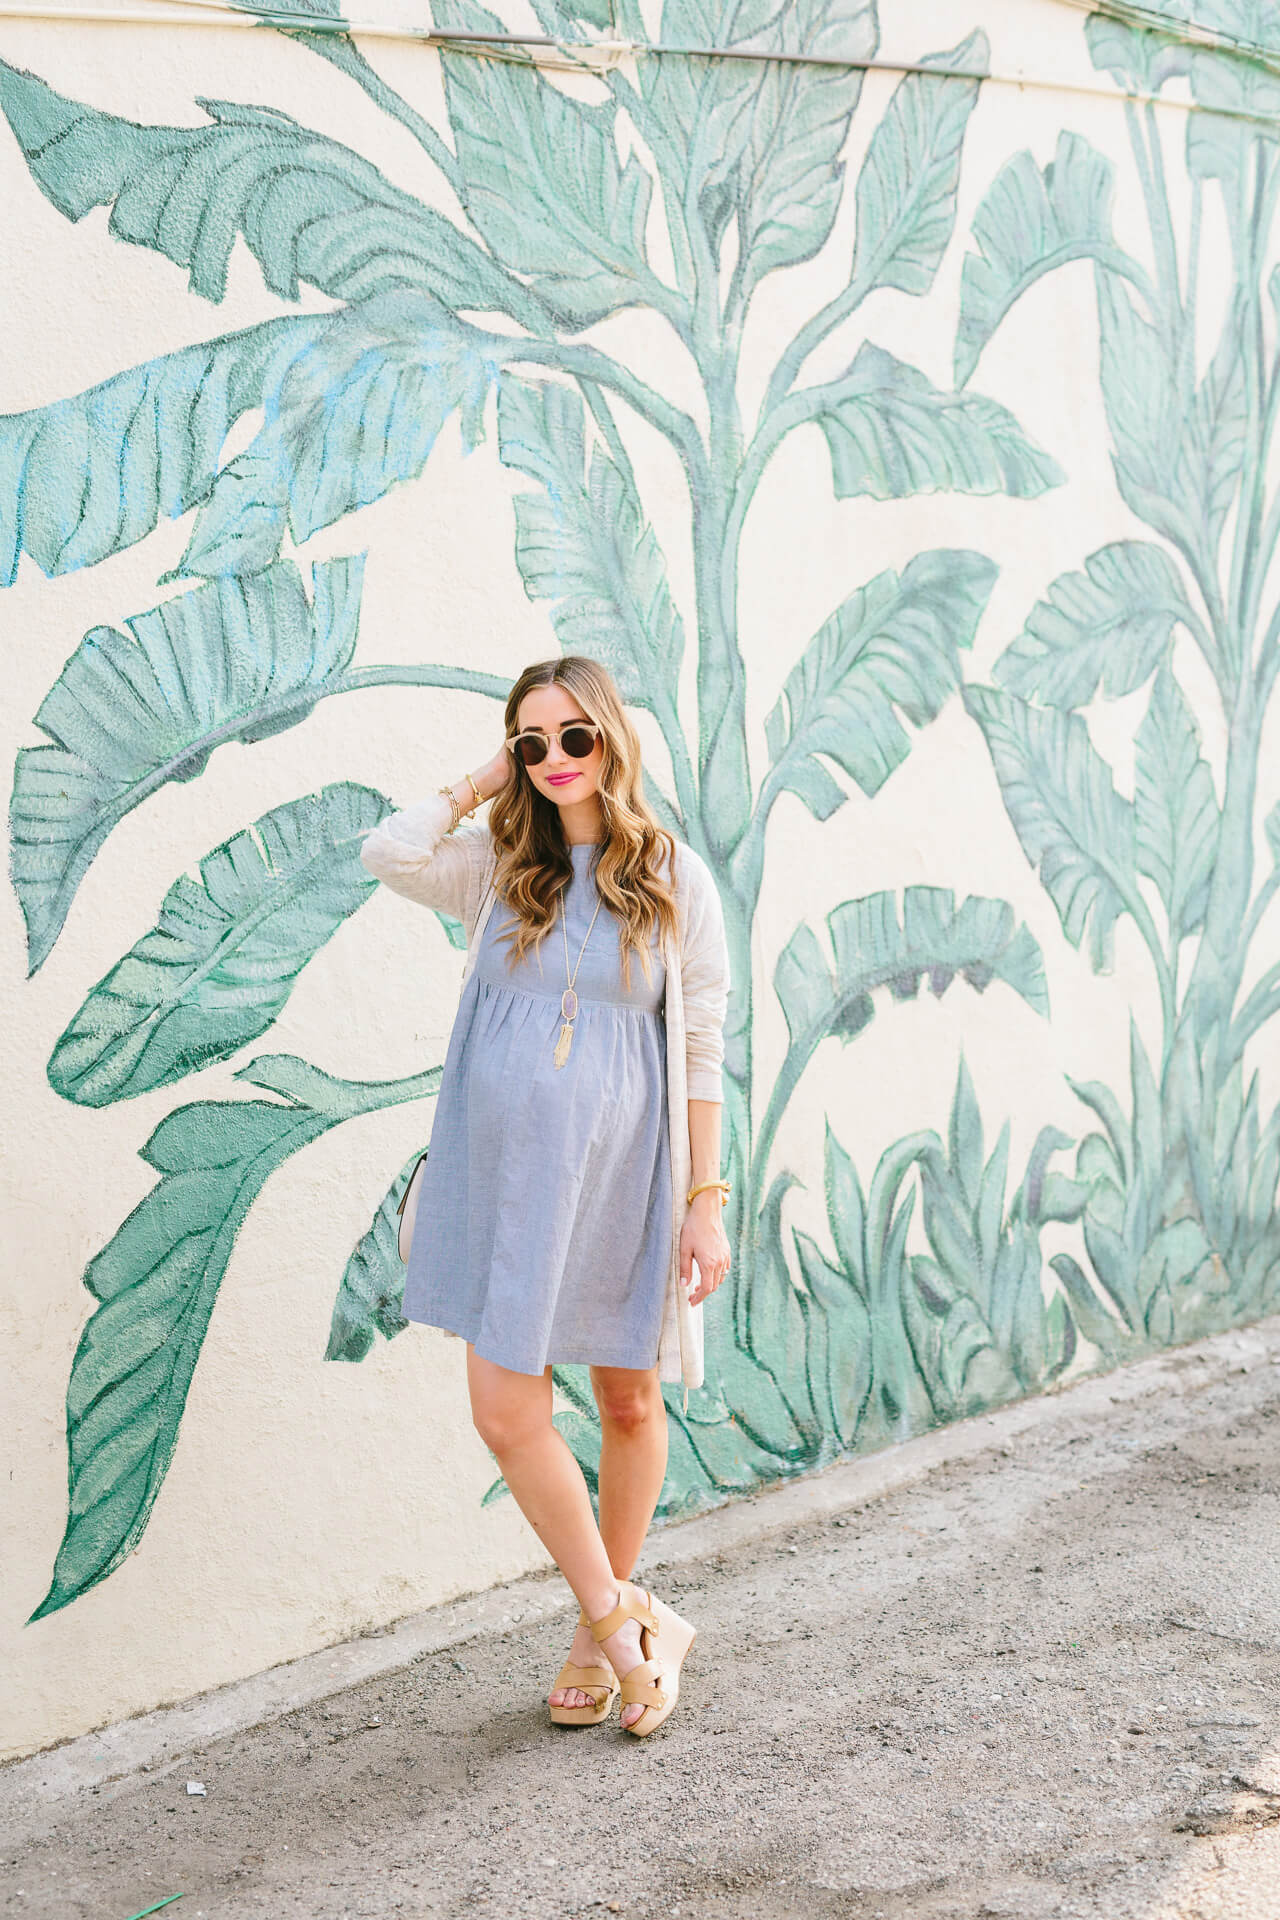 outfit inspiration: chambray dress with wedges